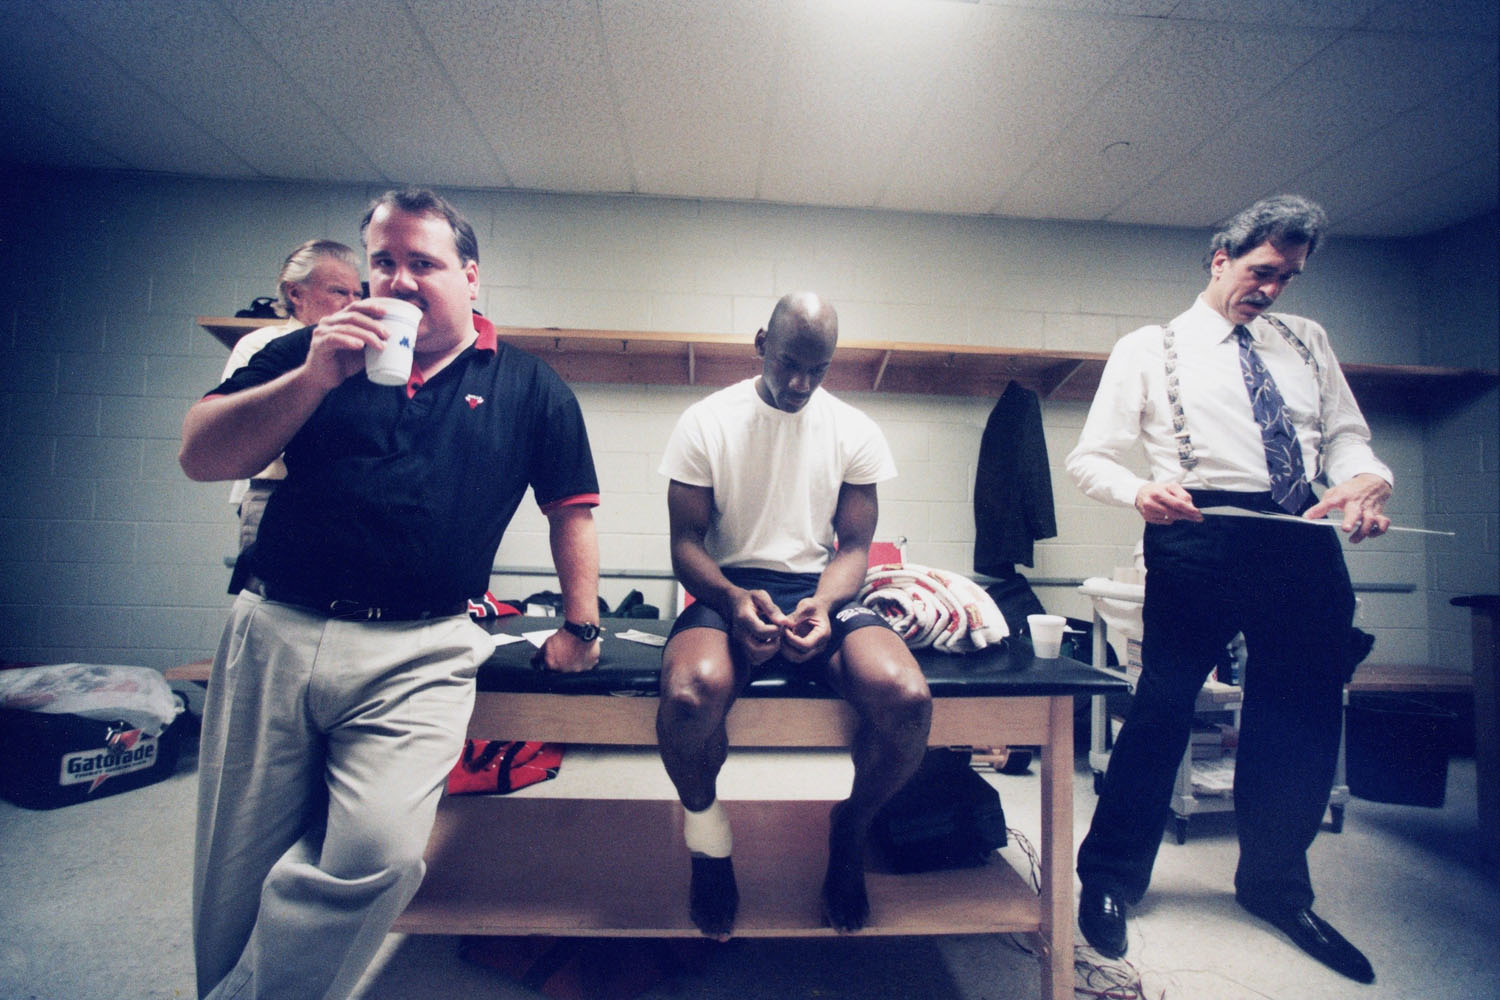 Michael Jordan along with head coach Phil Jackson with the Bulls' trainer in locker room in 1993.